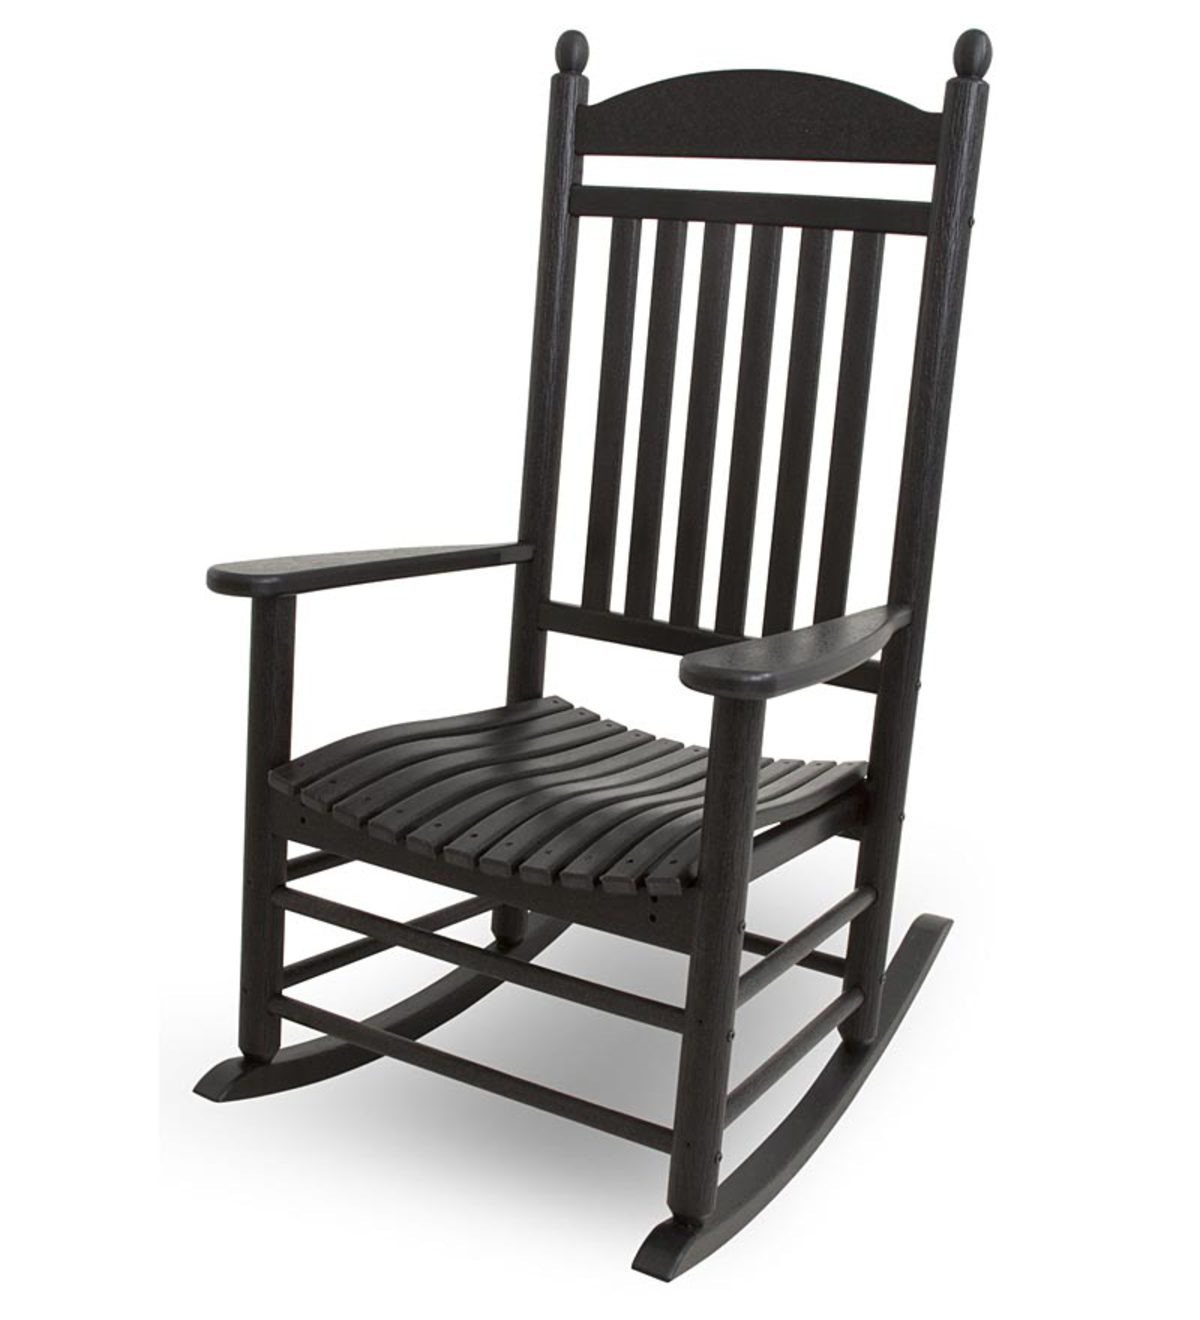 Outdoor Polywood Jefferson Rocking Chair | Plowhearth With Regard To Traditional Style Wooden Rocking Chairs With Contoured Seat, Black (#16 of 20)